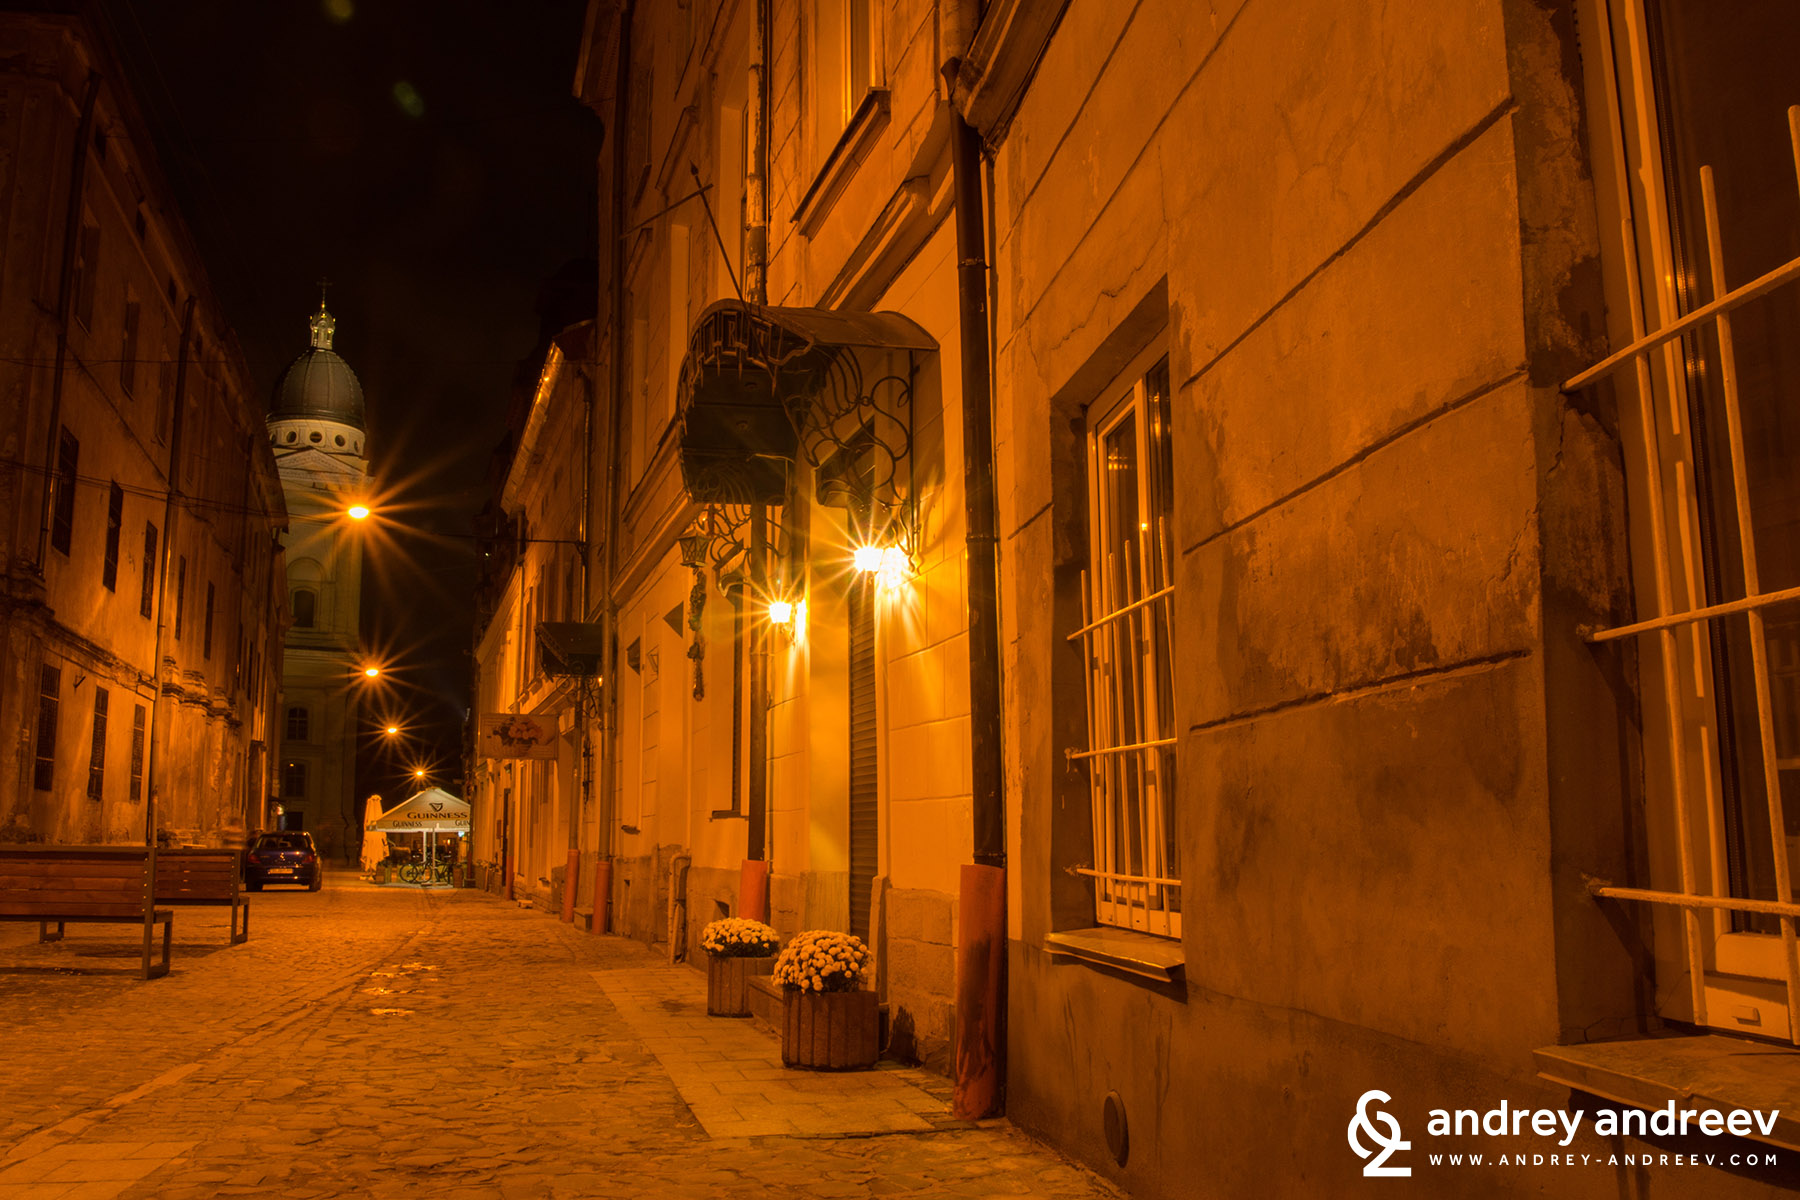 The small streets of old Lviv